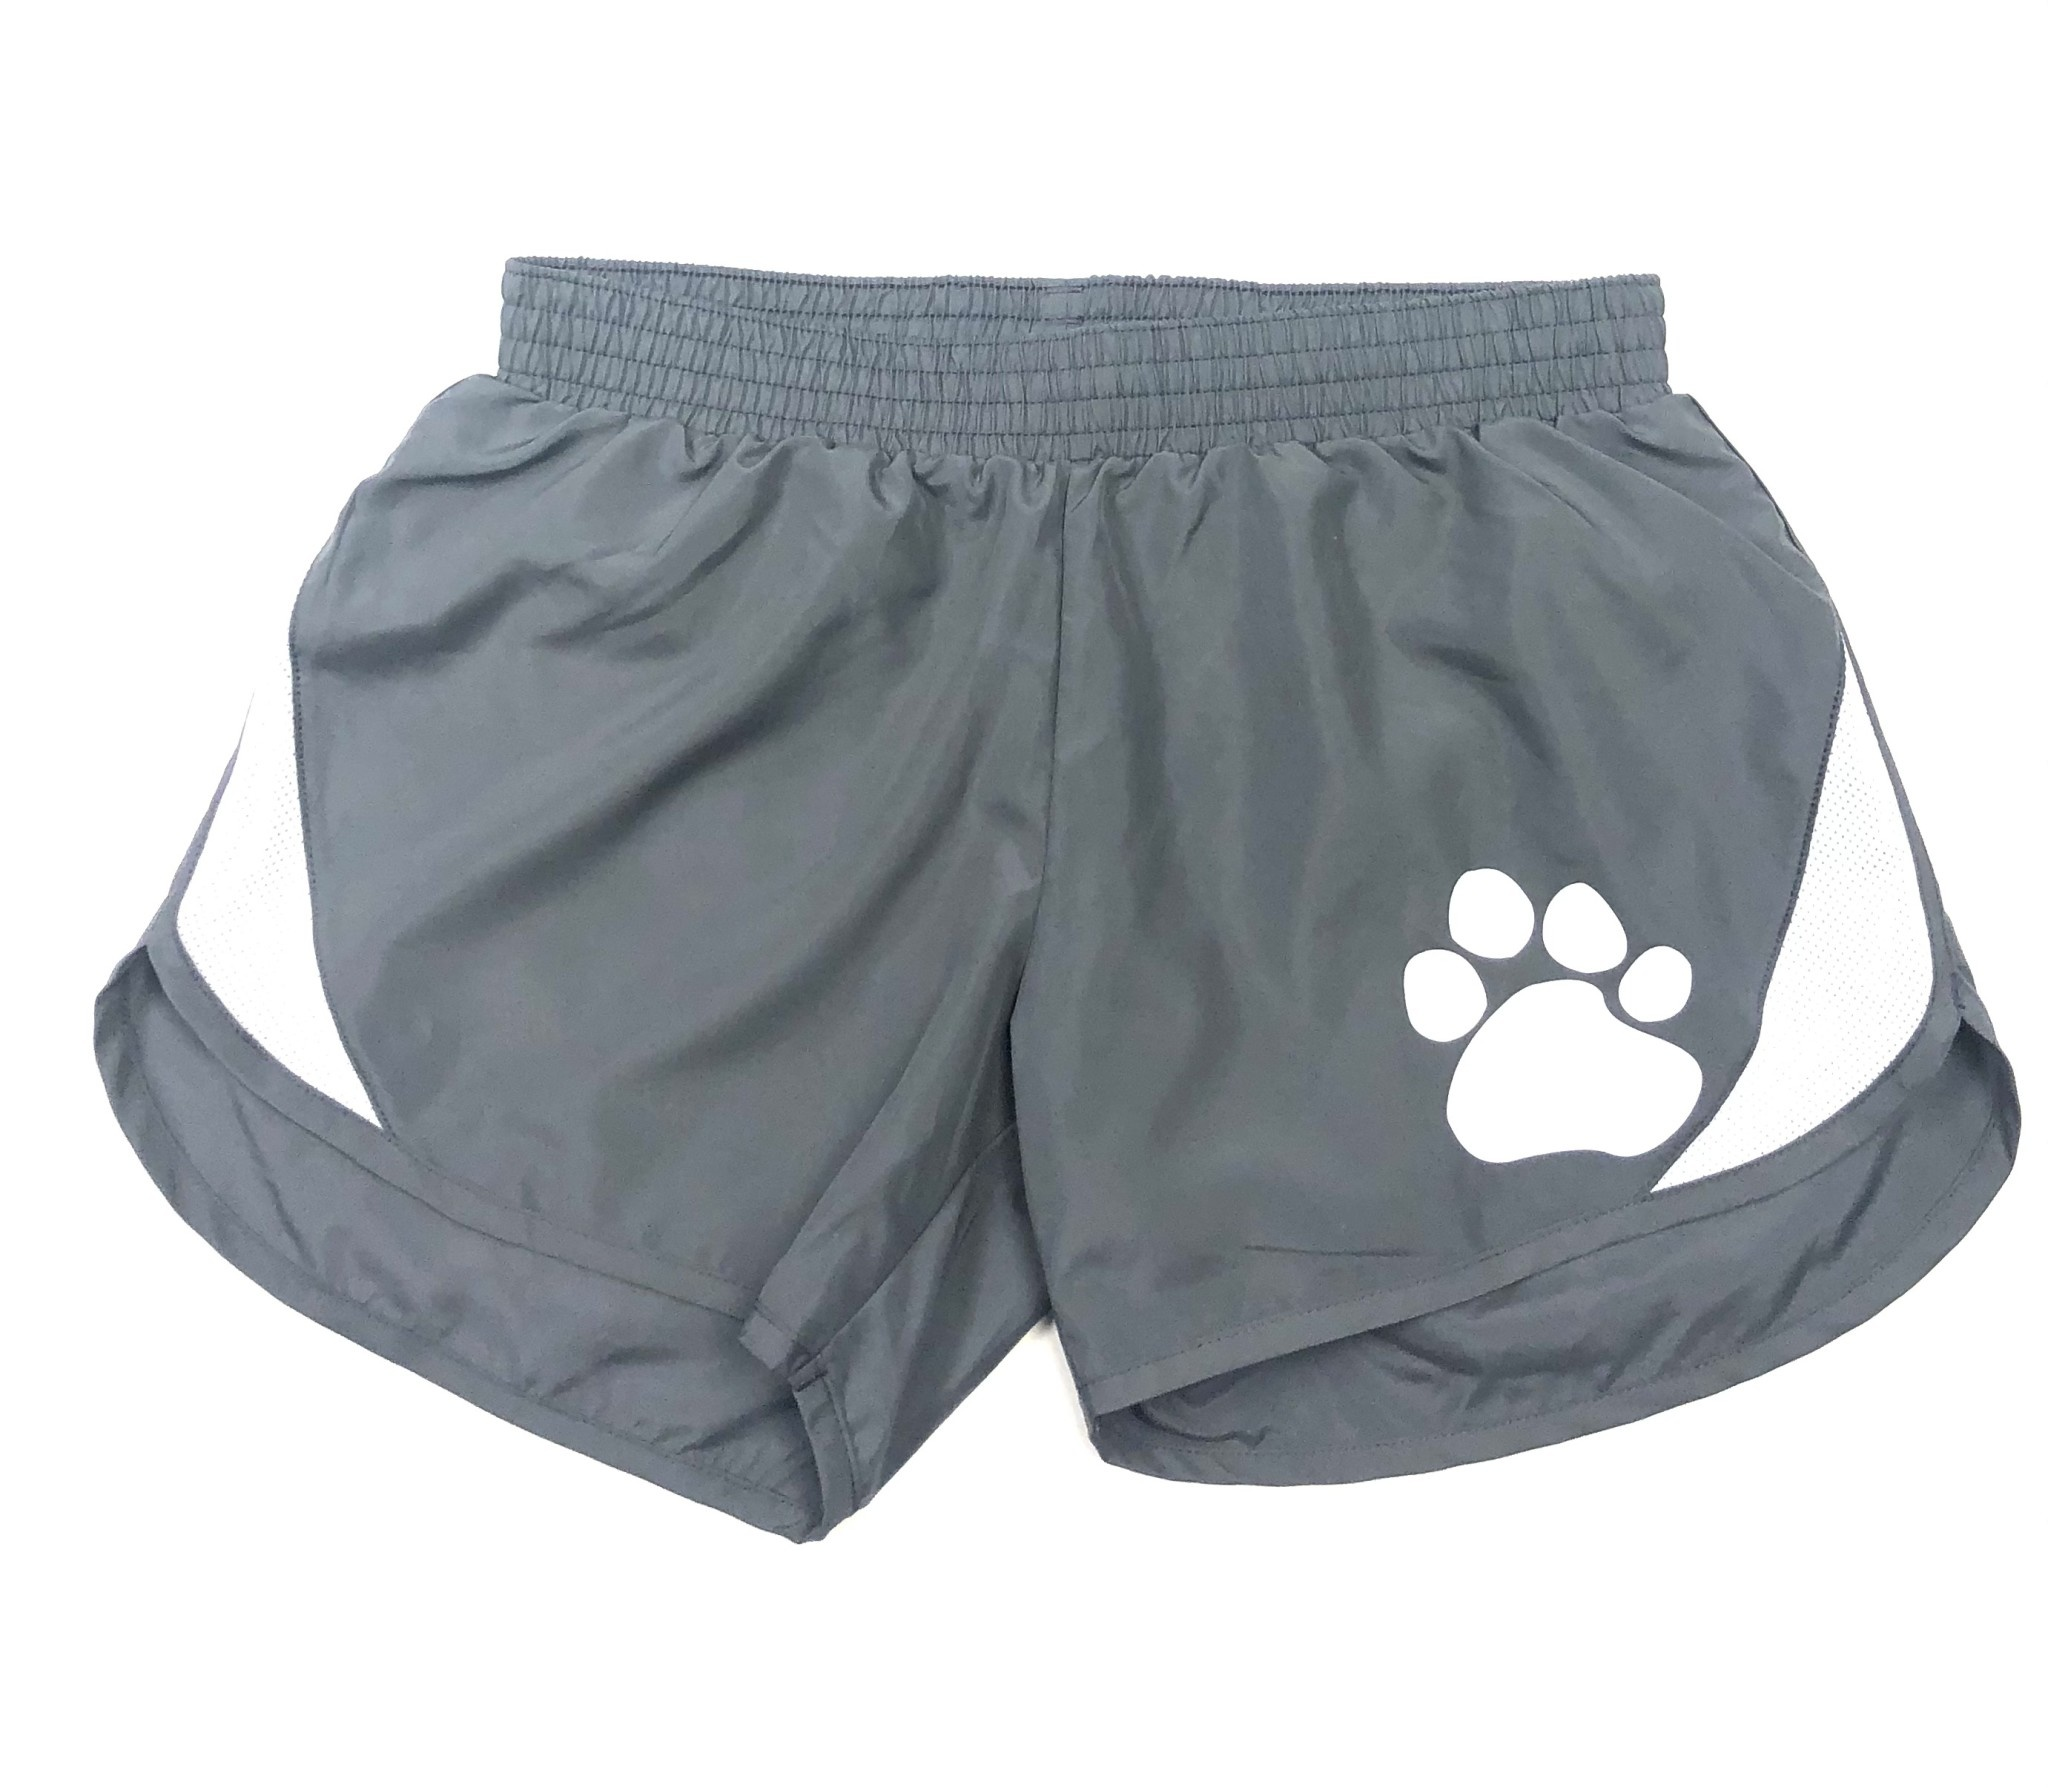 Forerunner-Pennant Shorts: Forerunner Youth Girls  Gray  with Paw